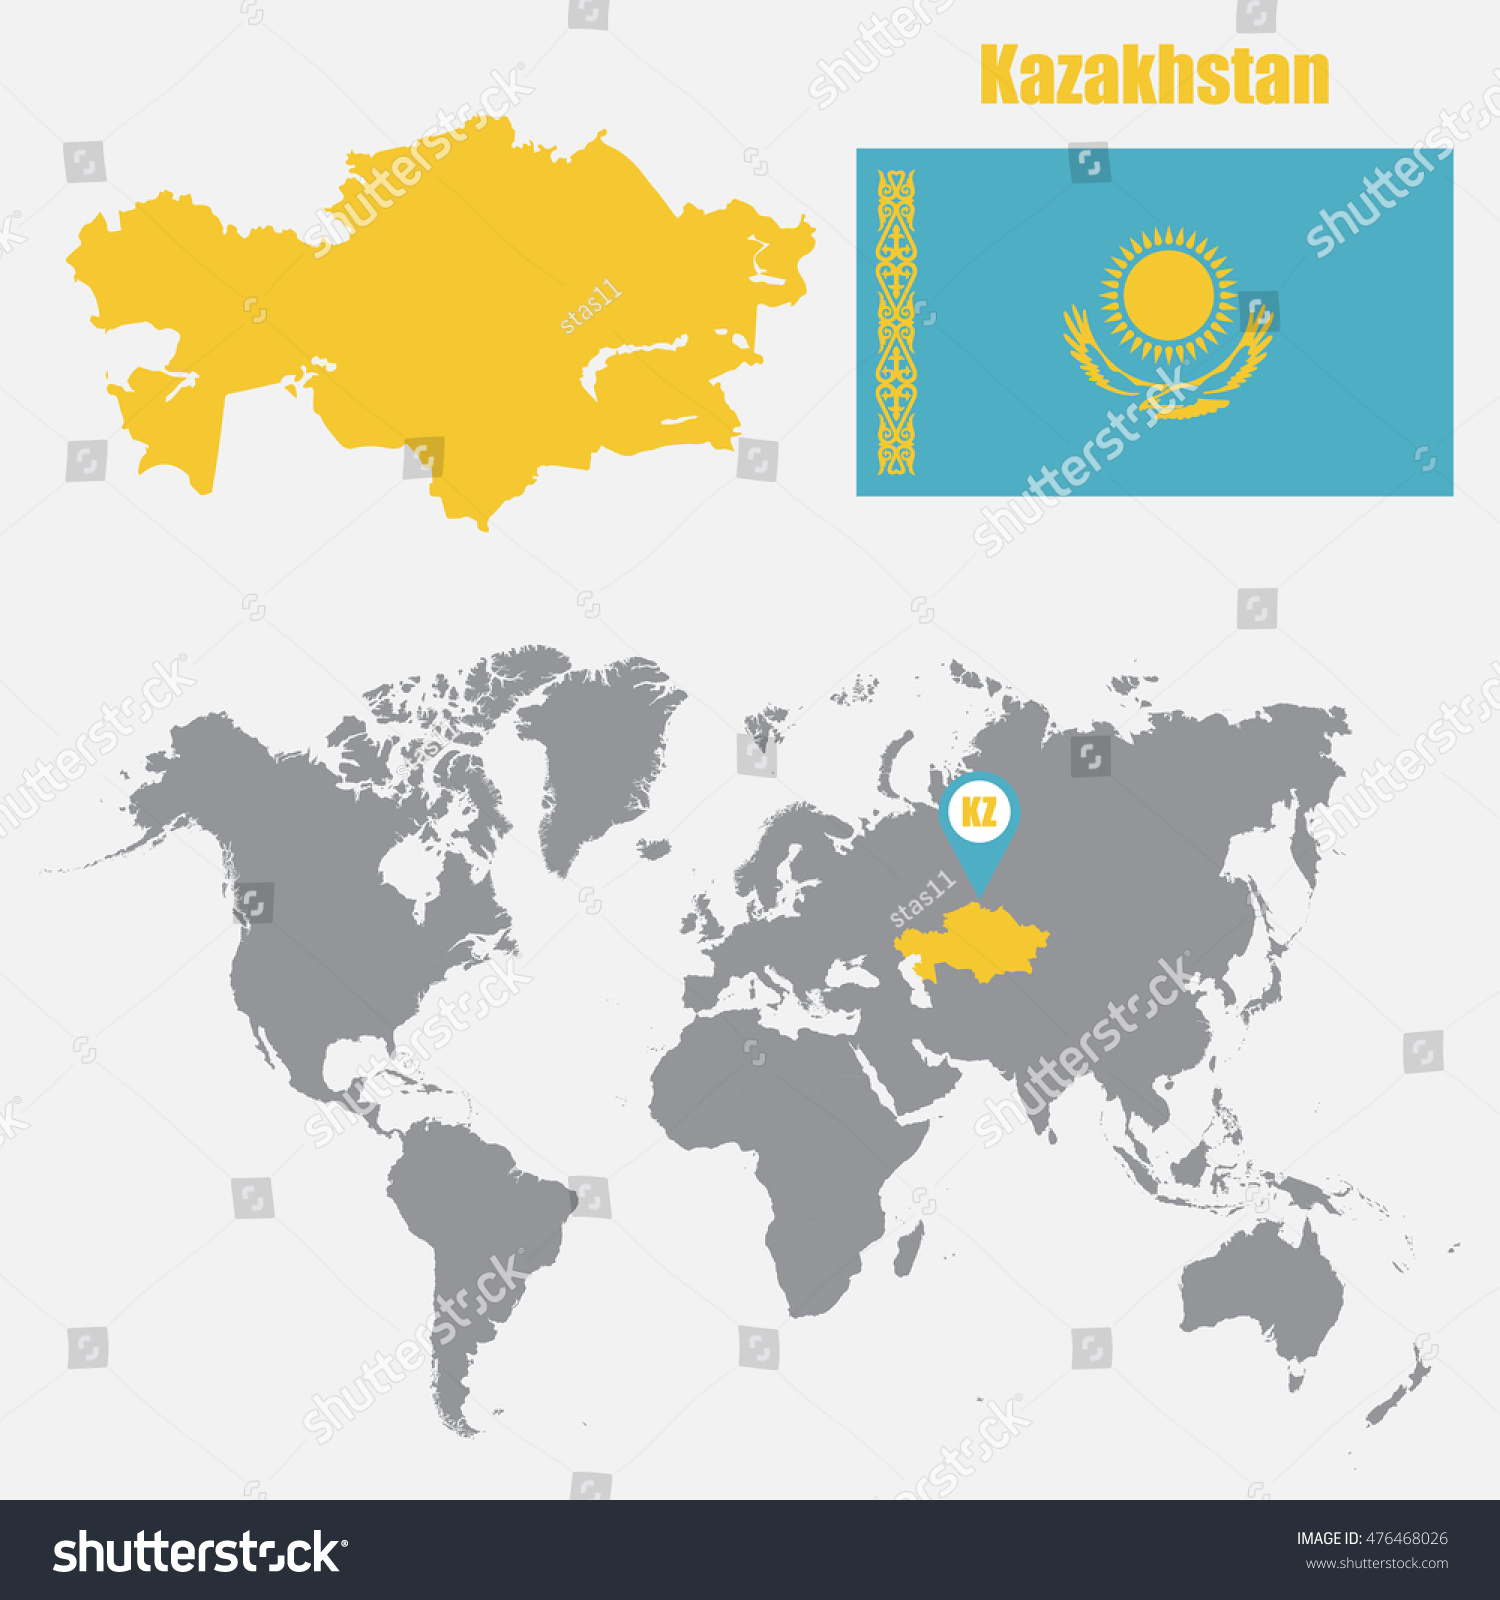 Kazakhstan map on world map flag stock vector 476468026 shutterstock kazakhstan map on a world map with flag and map pointer vector illustration gumiabroncs Choice Image